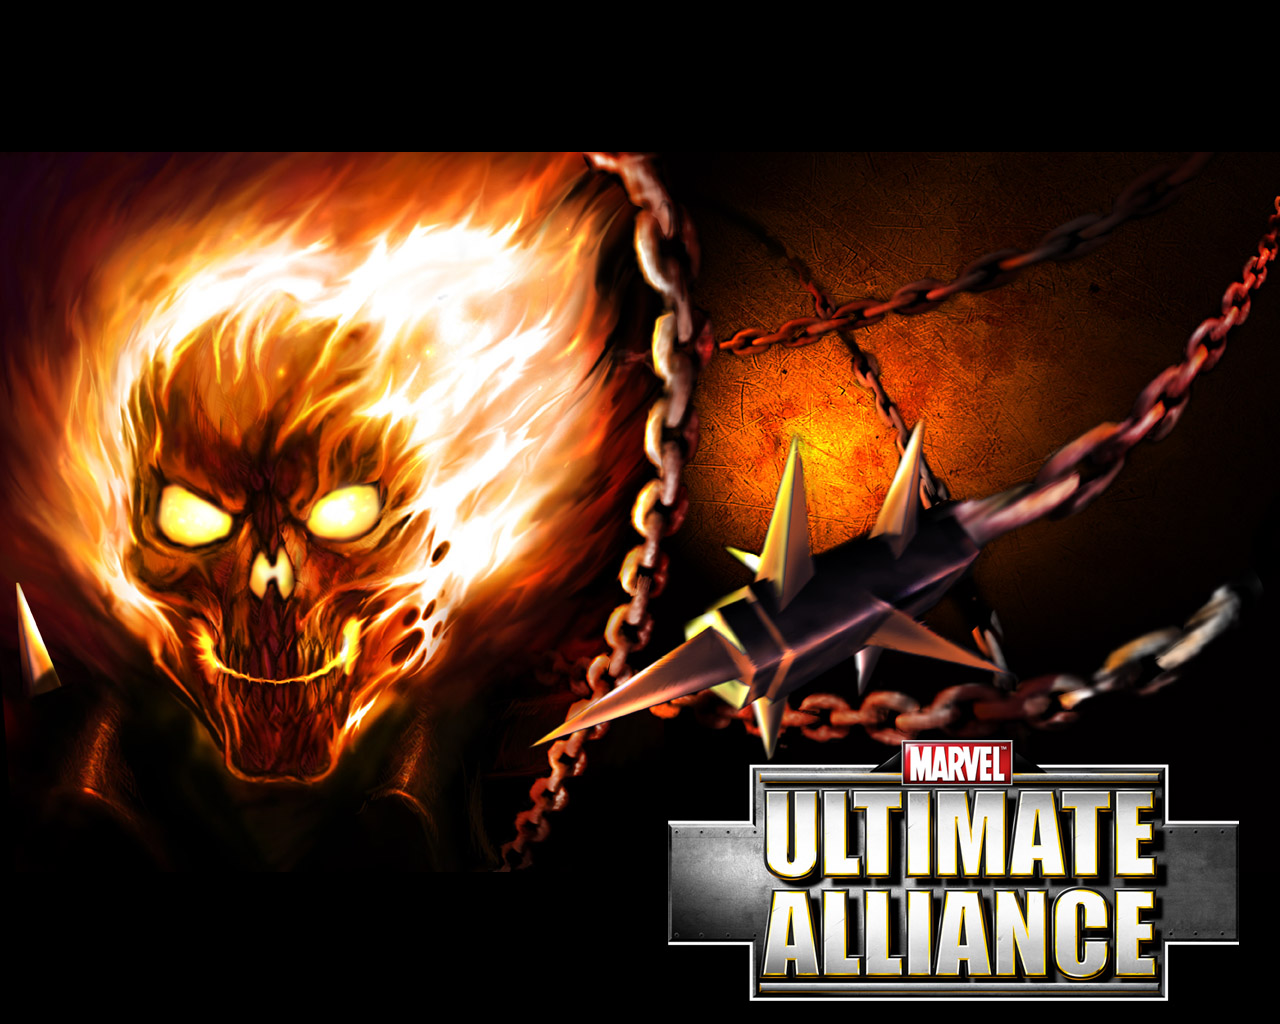 You are viewing the Ghost Rider wallpaper named